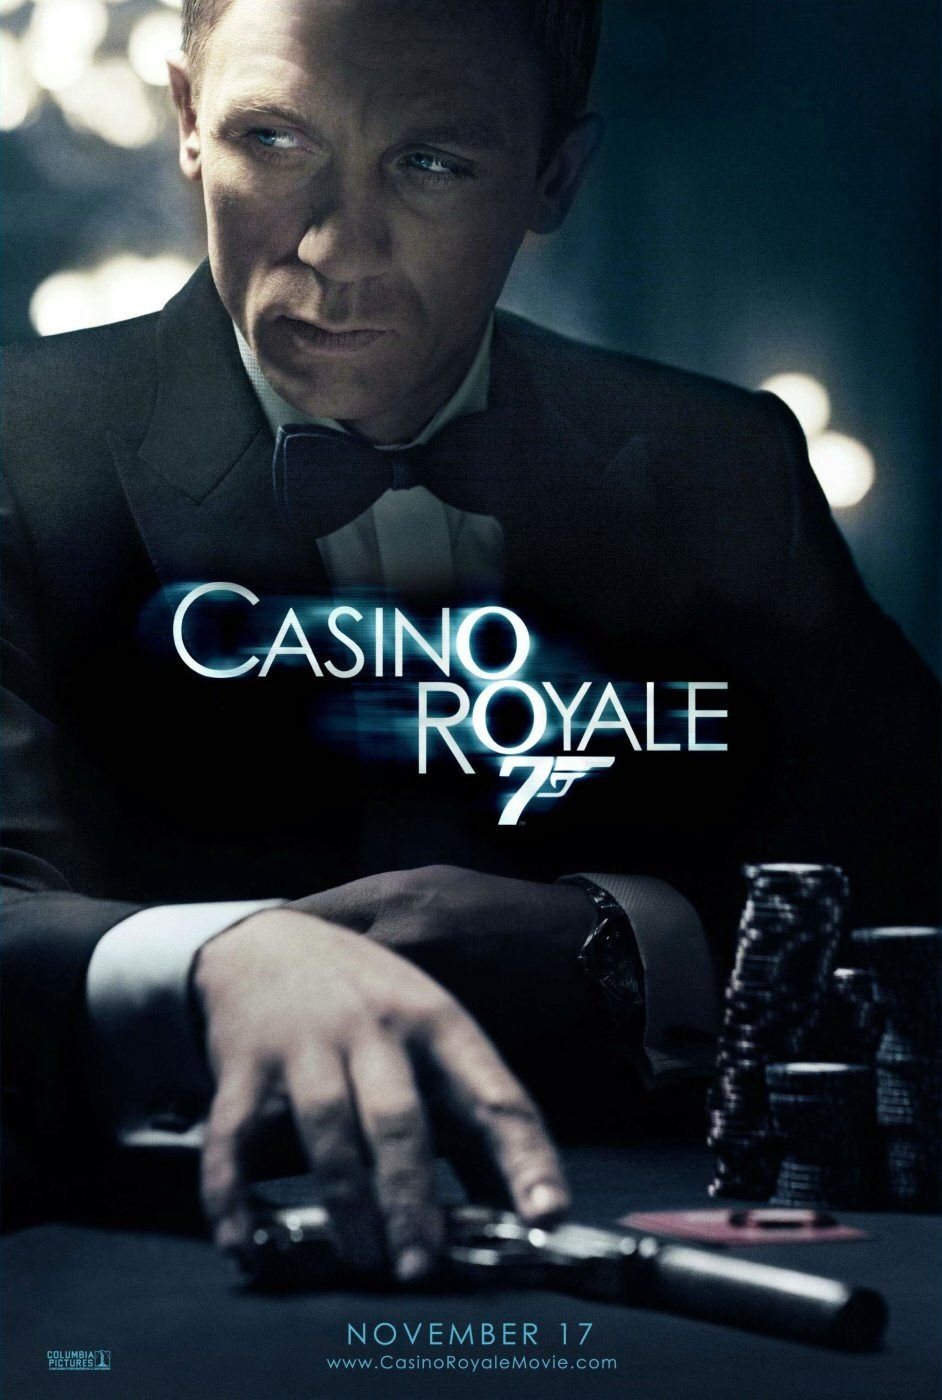 casino royale free online movie enterhakenpistole